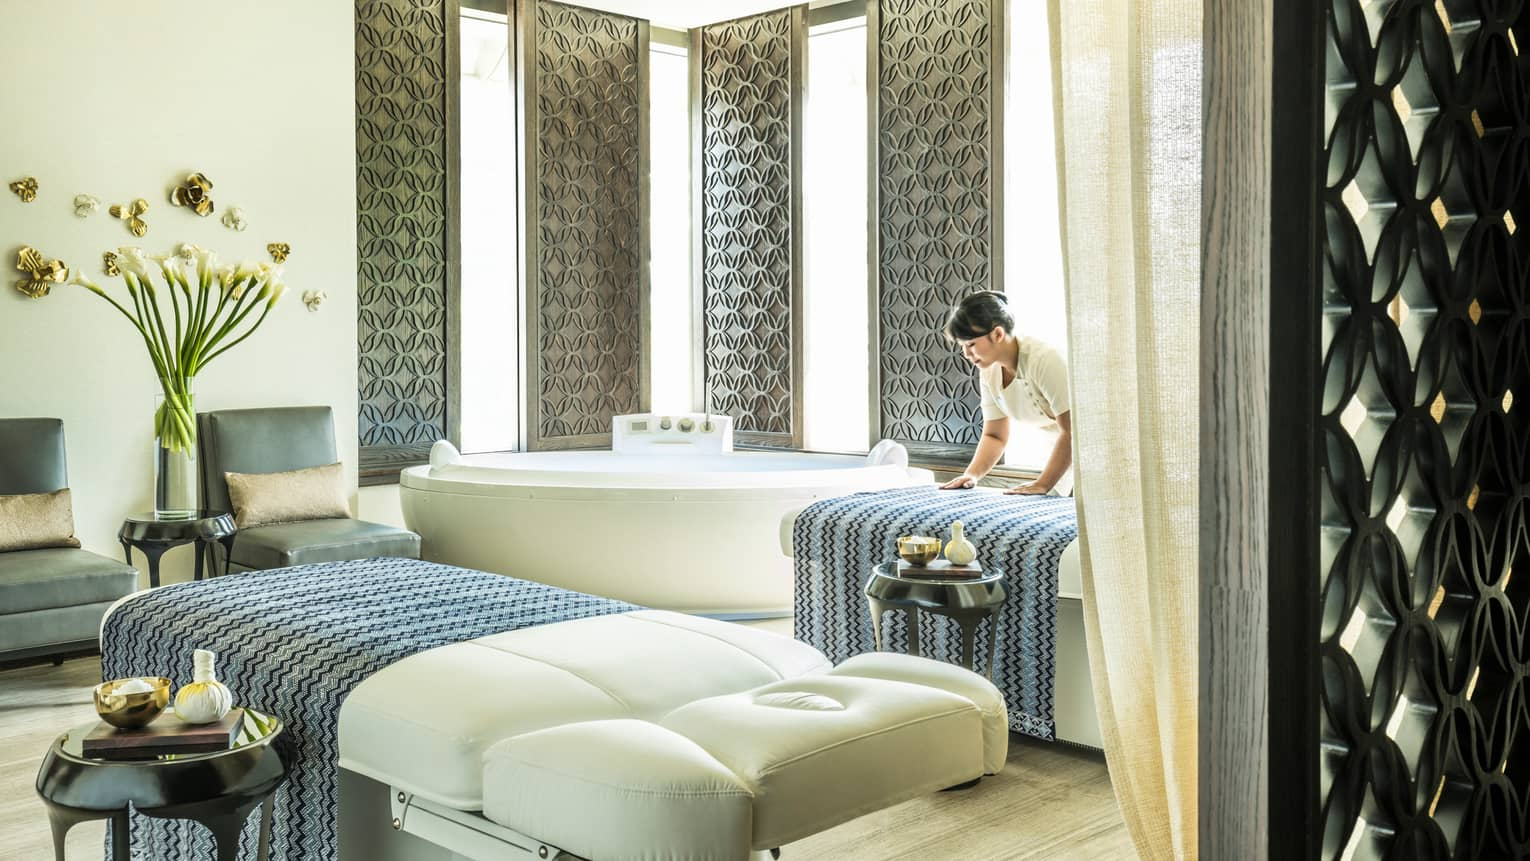 Large white spa table in front of white spa tub, silver wall panels, woman places blanket on table